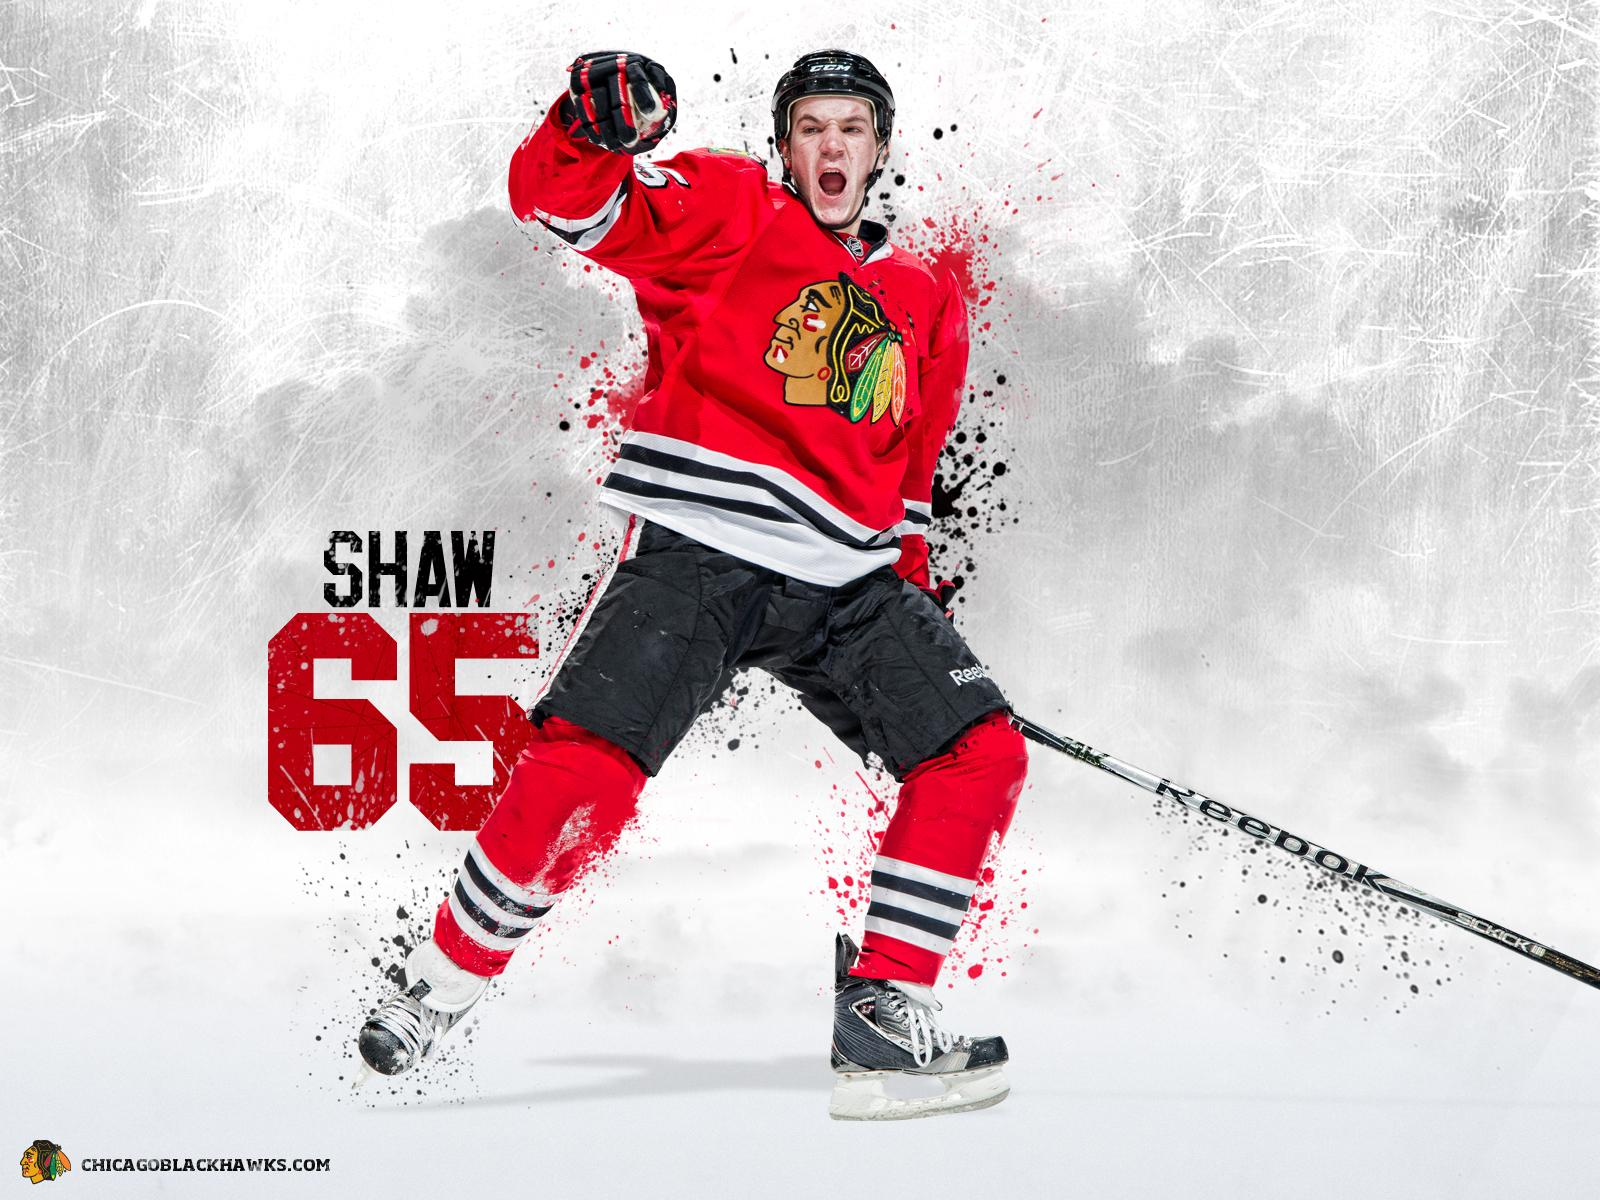 Player-Wallpaper-11-shaw-1600.jpg (1600×1200)